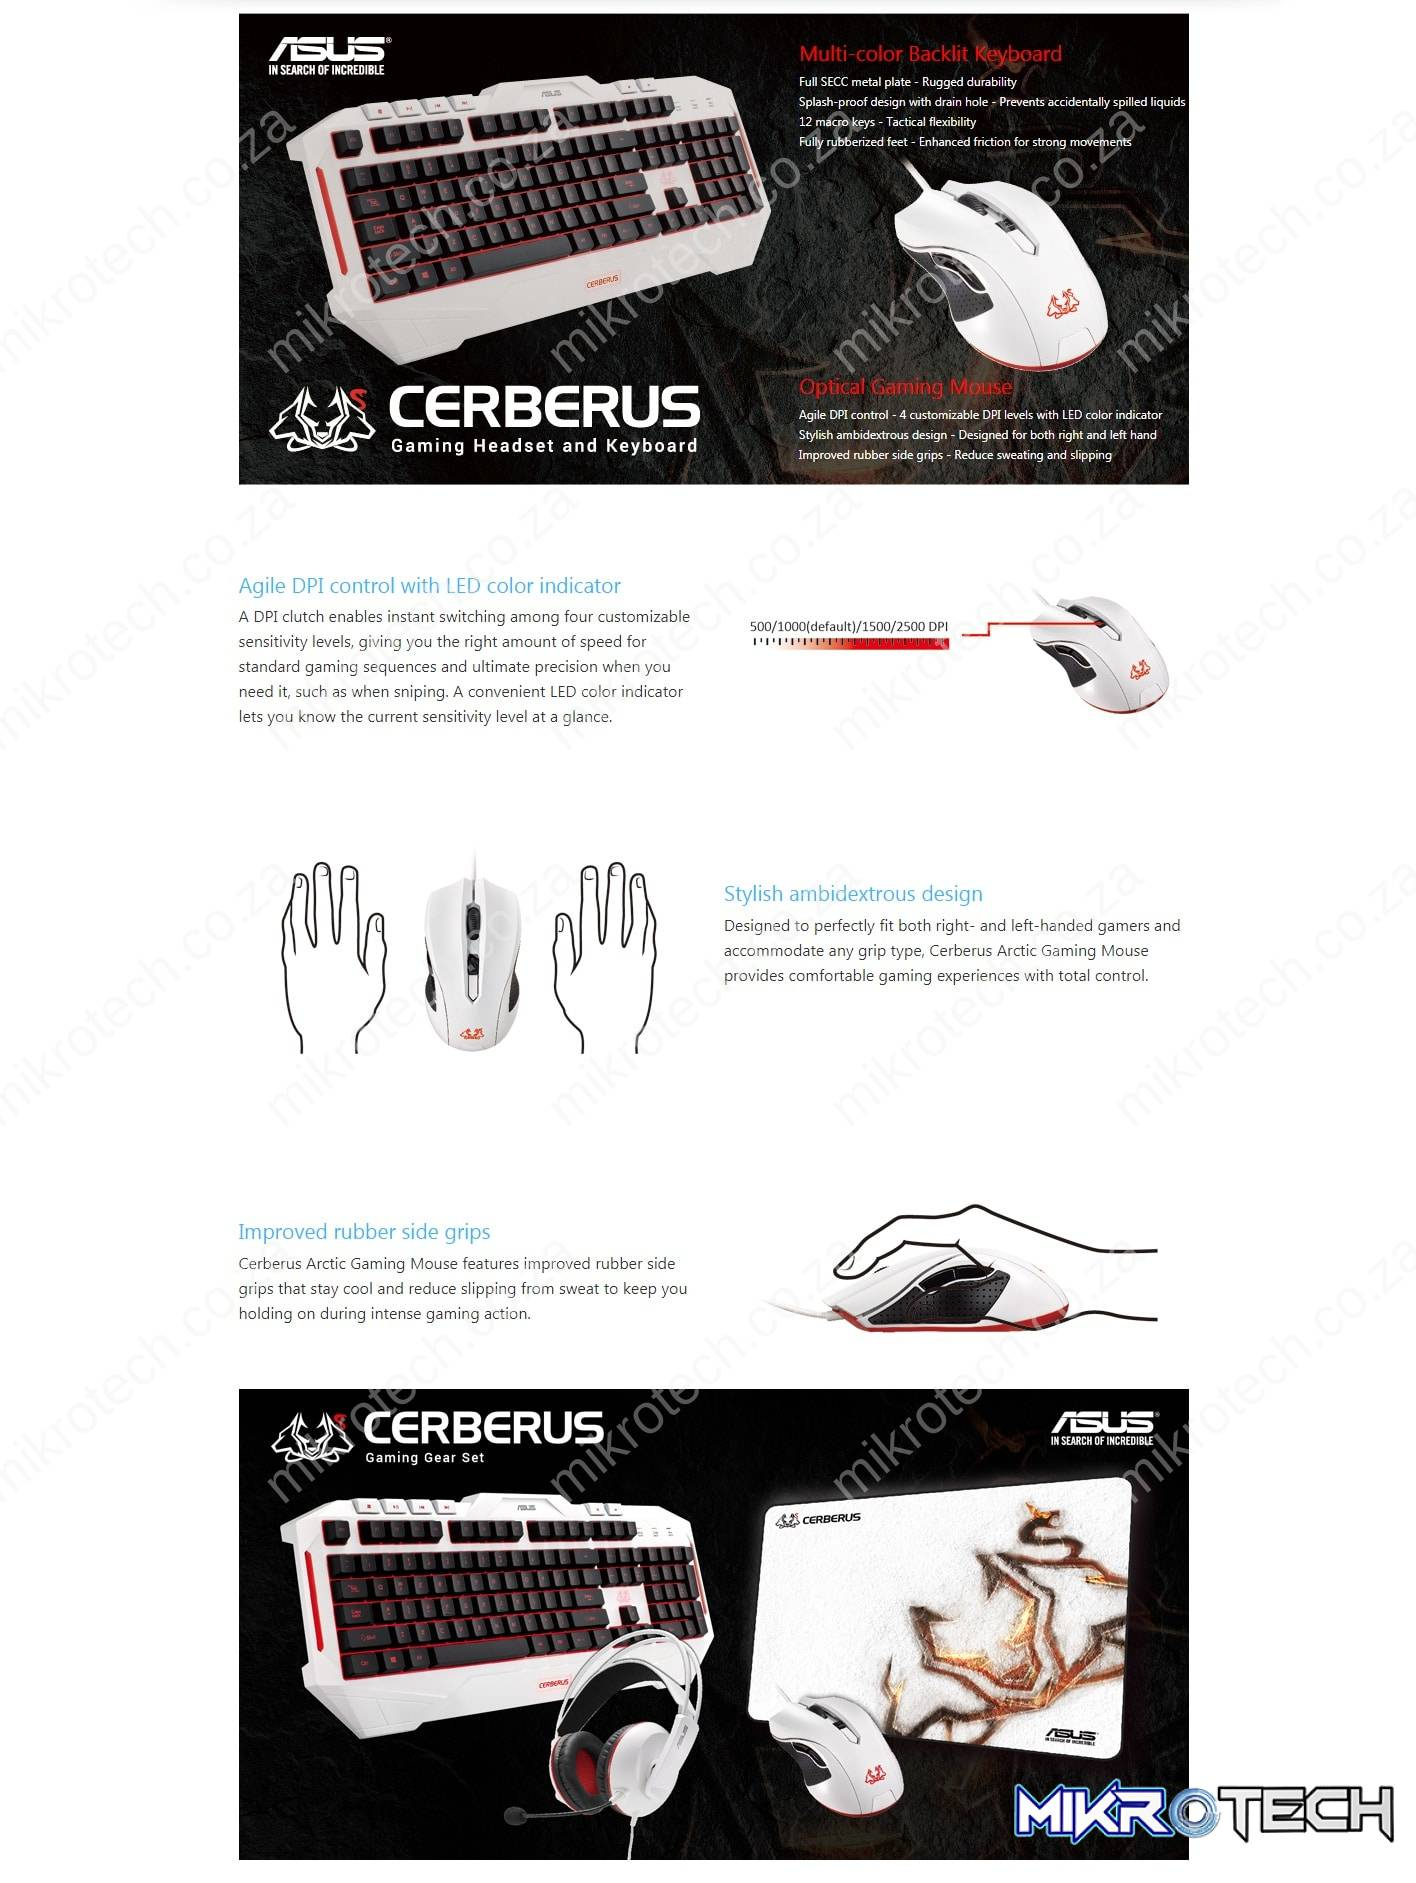 Asus Cerberus Arctic Mouse Ambidextrous 2500 DPI Gaming Mouse